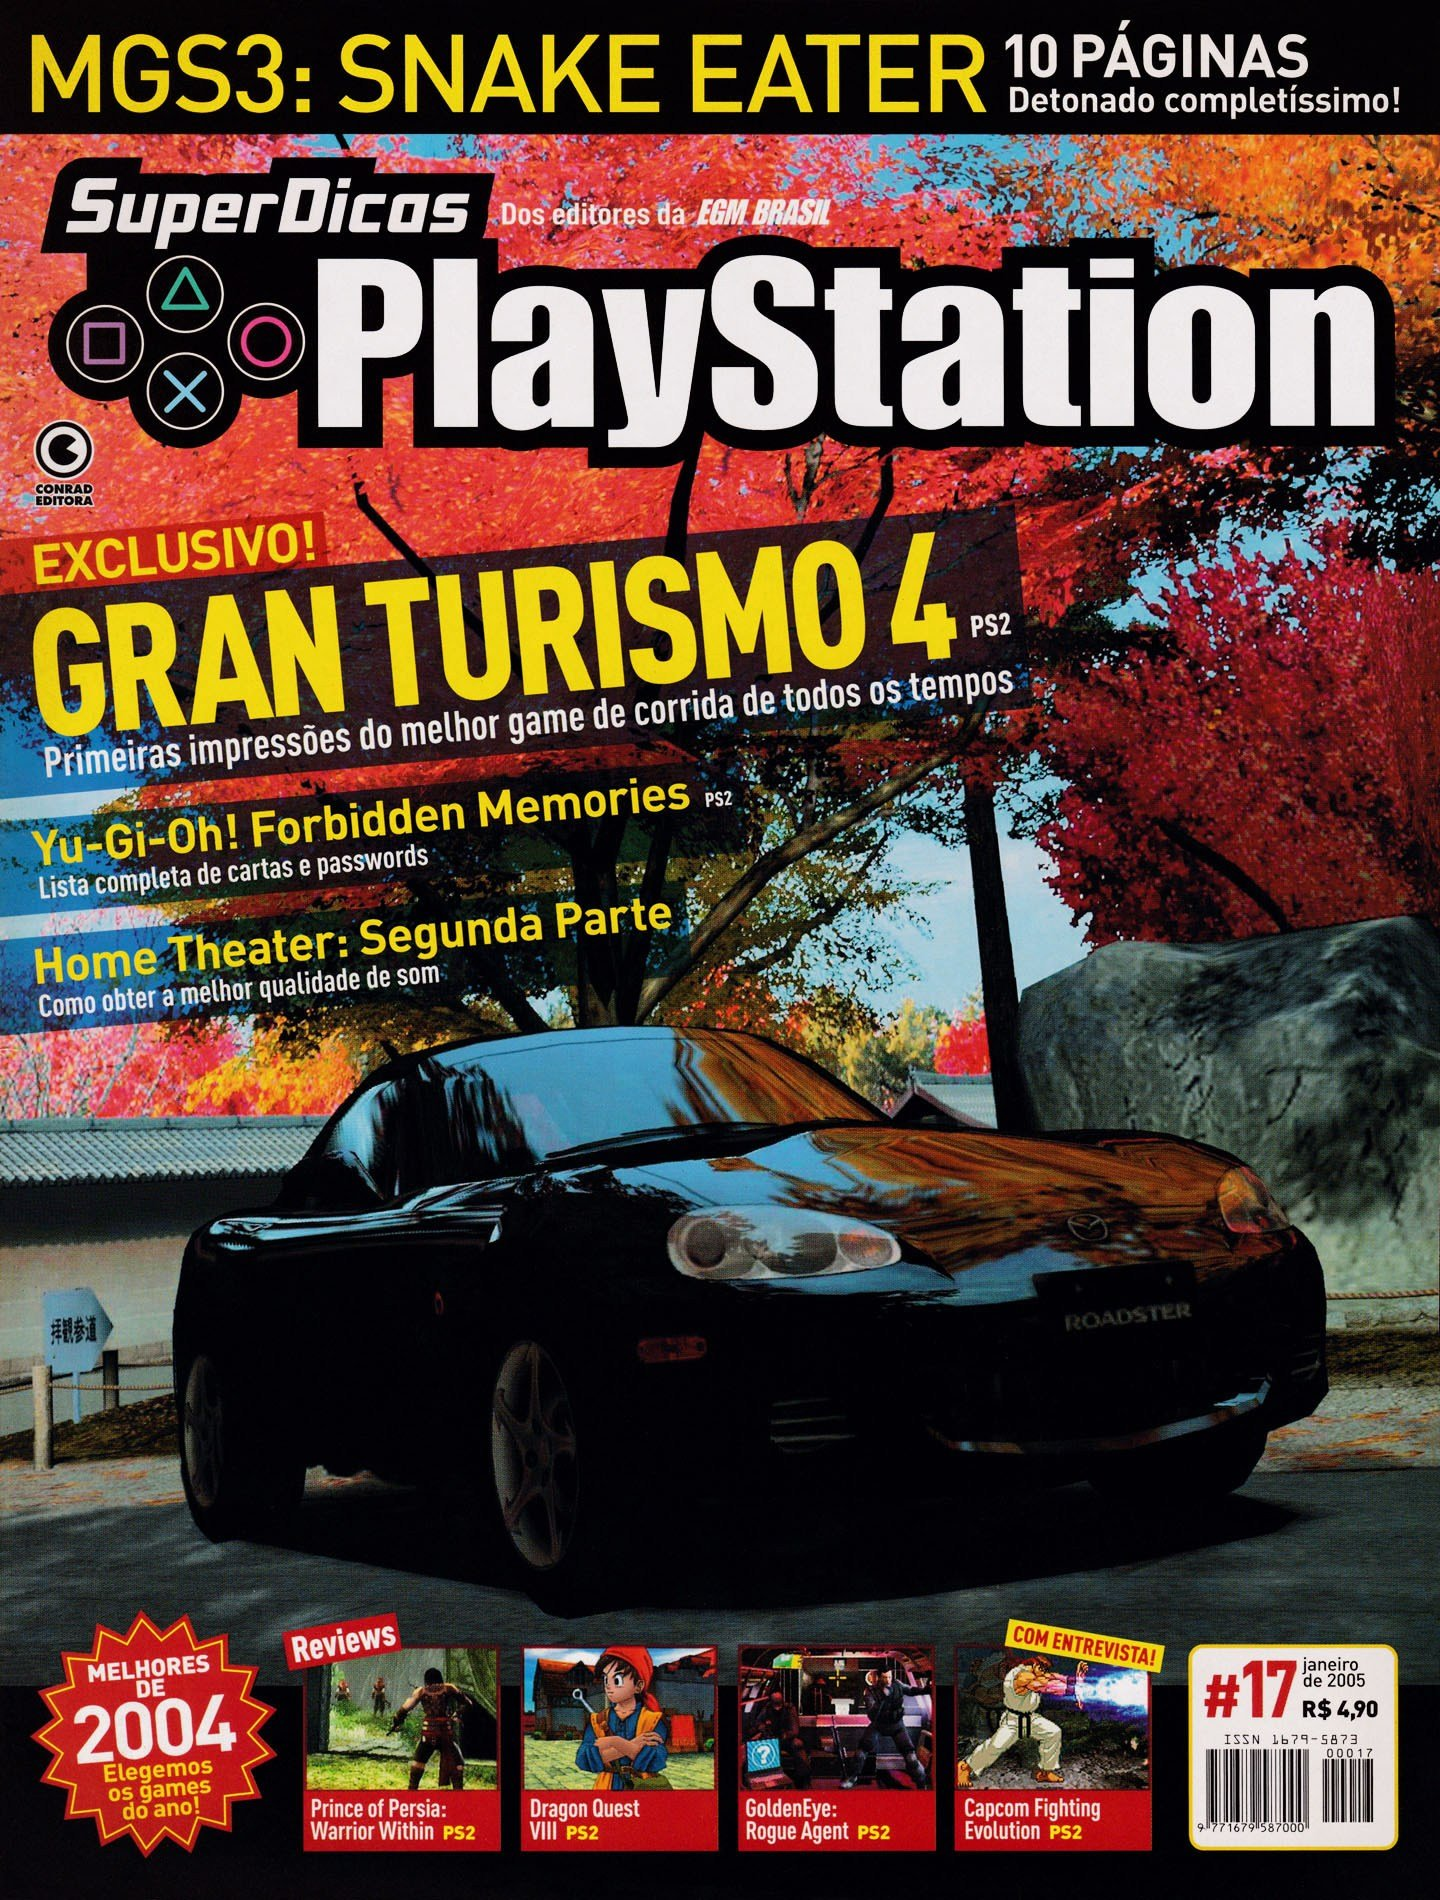 Super Dicas Playstation 17 (January 2005)